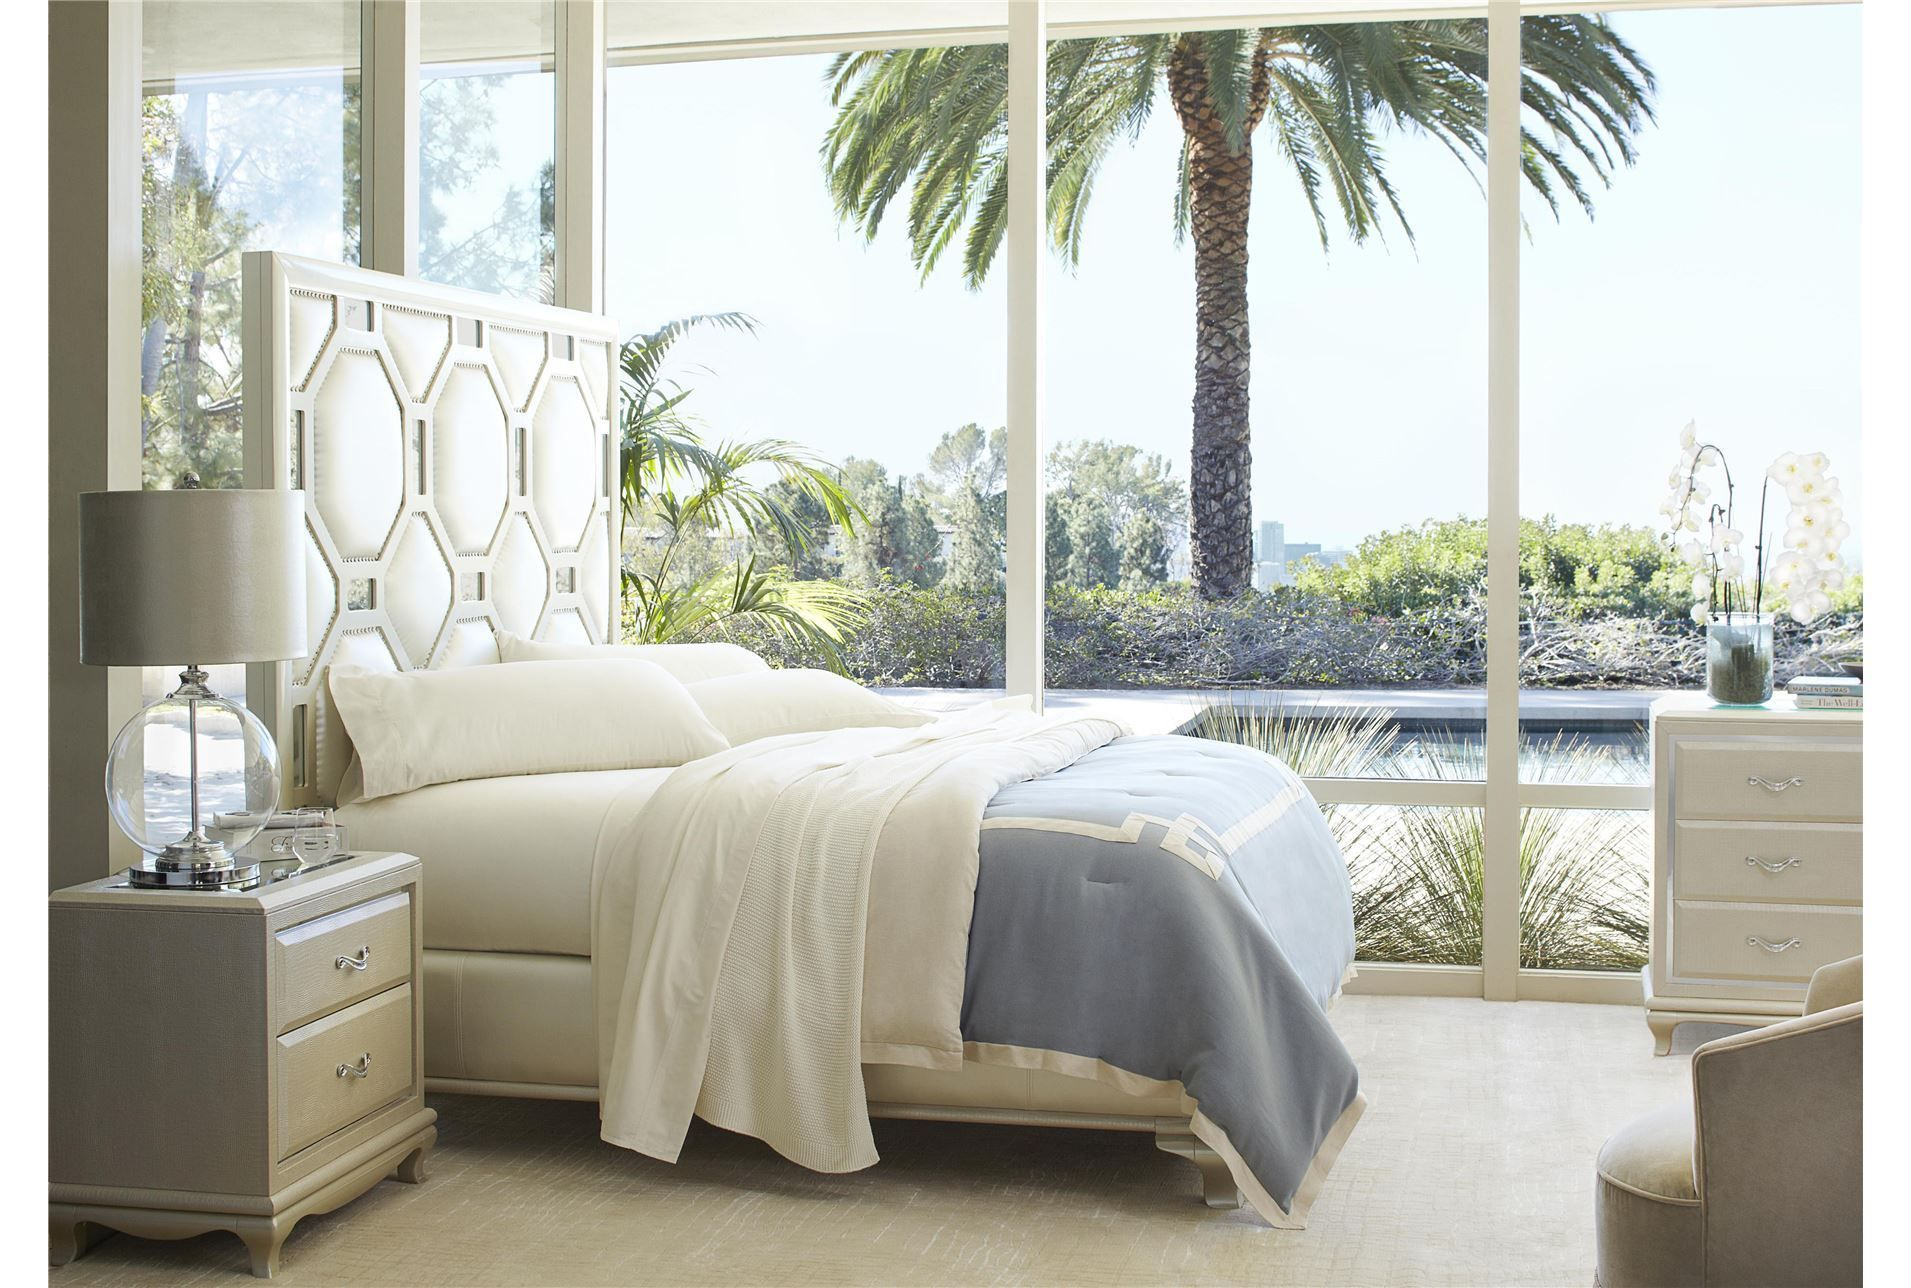 7 Beautiful White Queen Size Beds From Us Stores Moderne Schlafzimmermobel Weisse Schlafzimmermobel Schlafzimmermobel